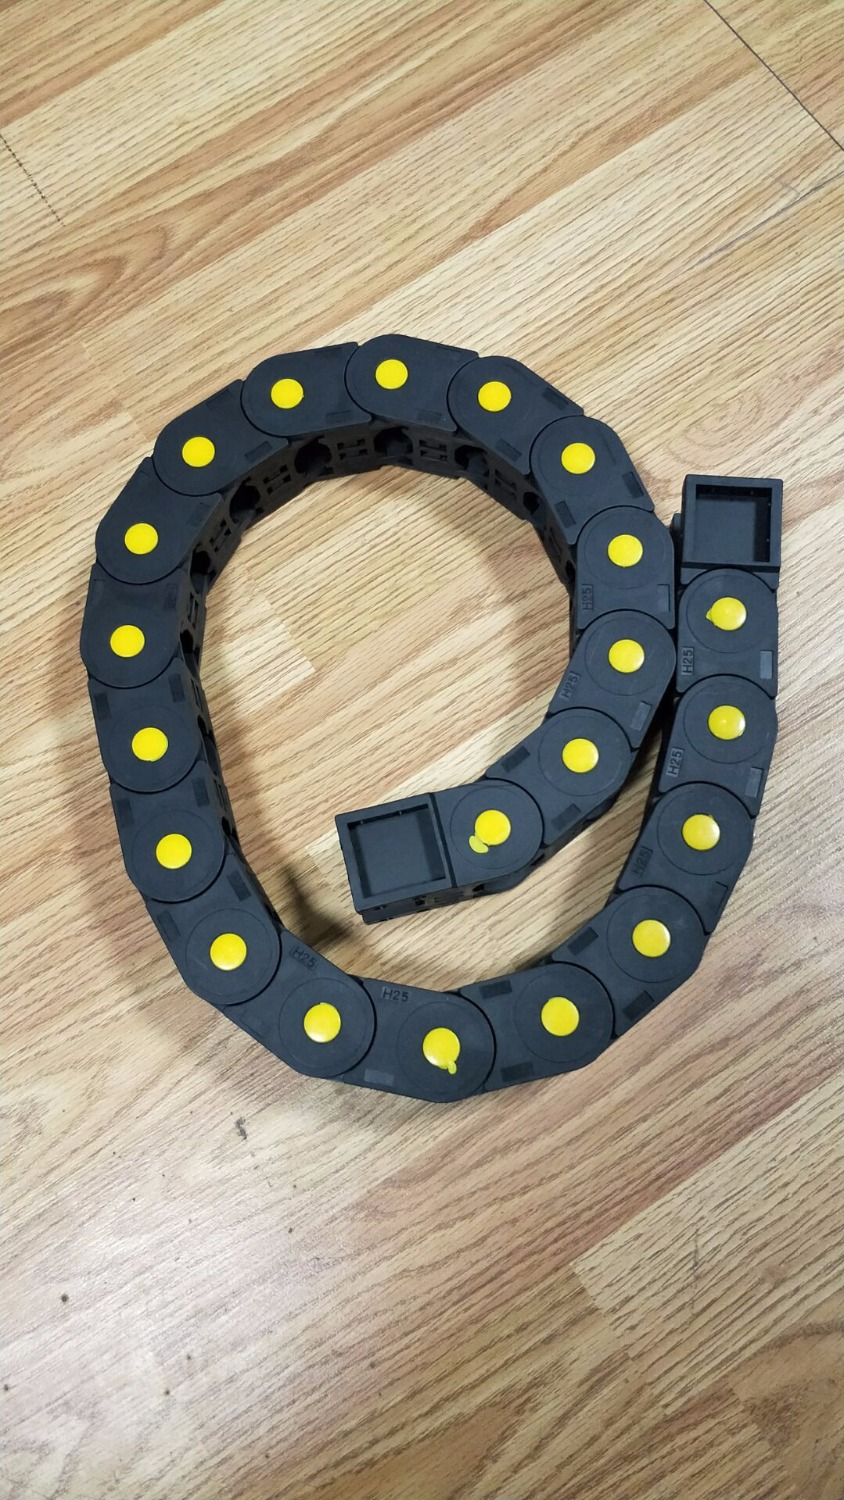 25*38mm R55 Drag Chain 1000mm series Engiheering plastic cable Drag chains drag reduction